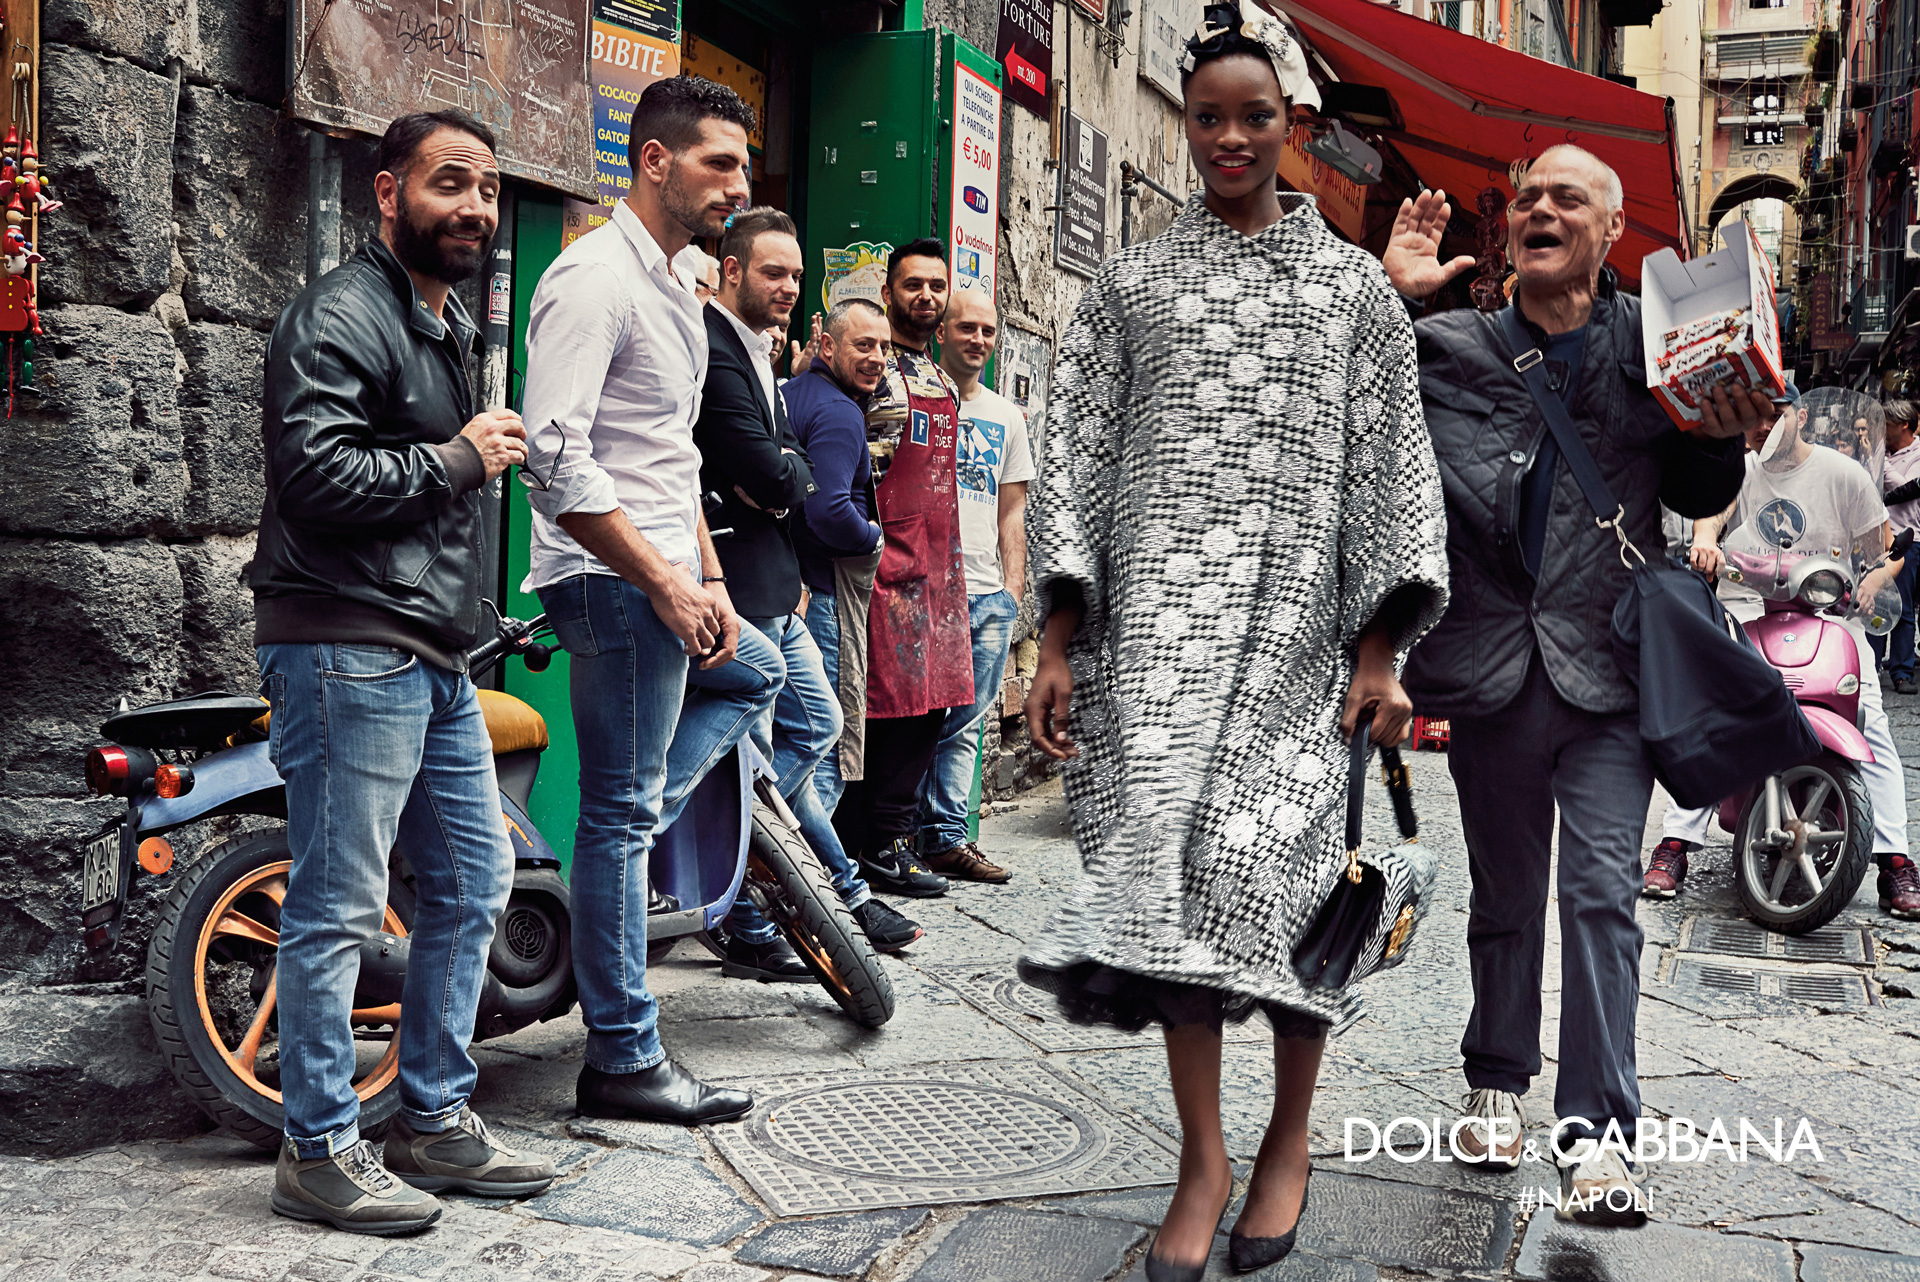 Dolce-Gabbana-Fall-Winter-2016-2017-Ad-Campaign-Naples-7